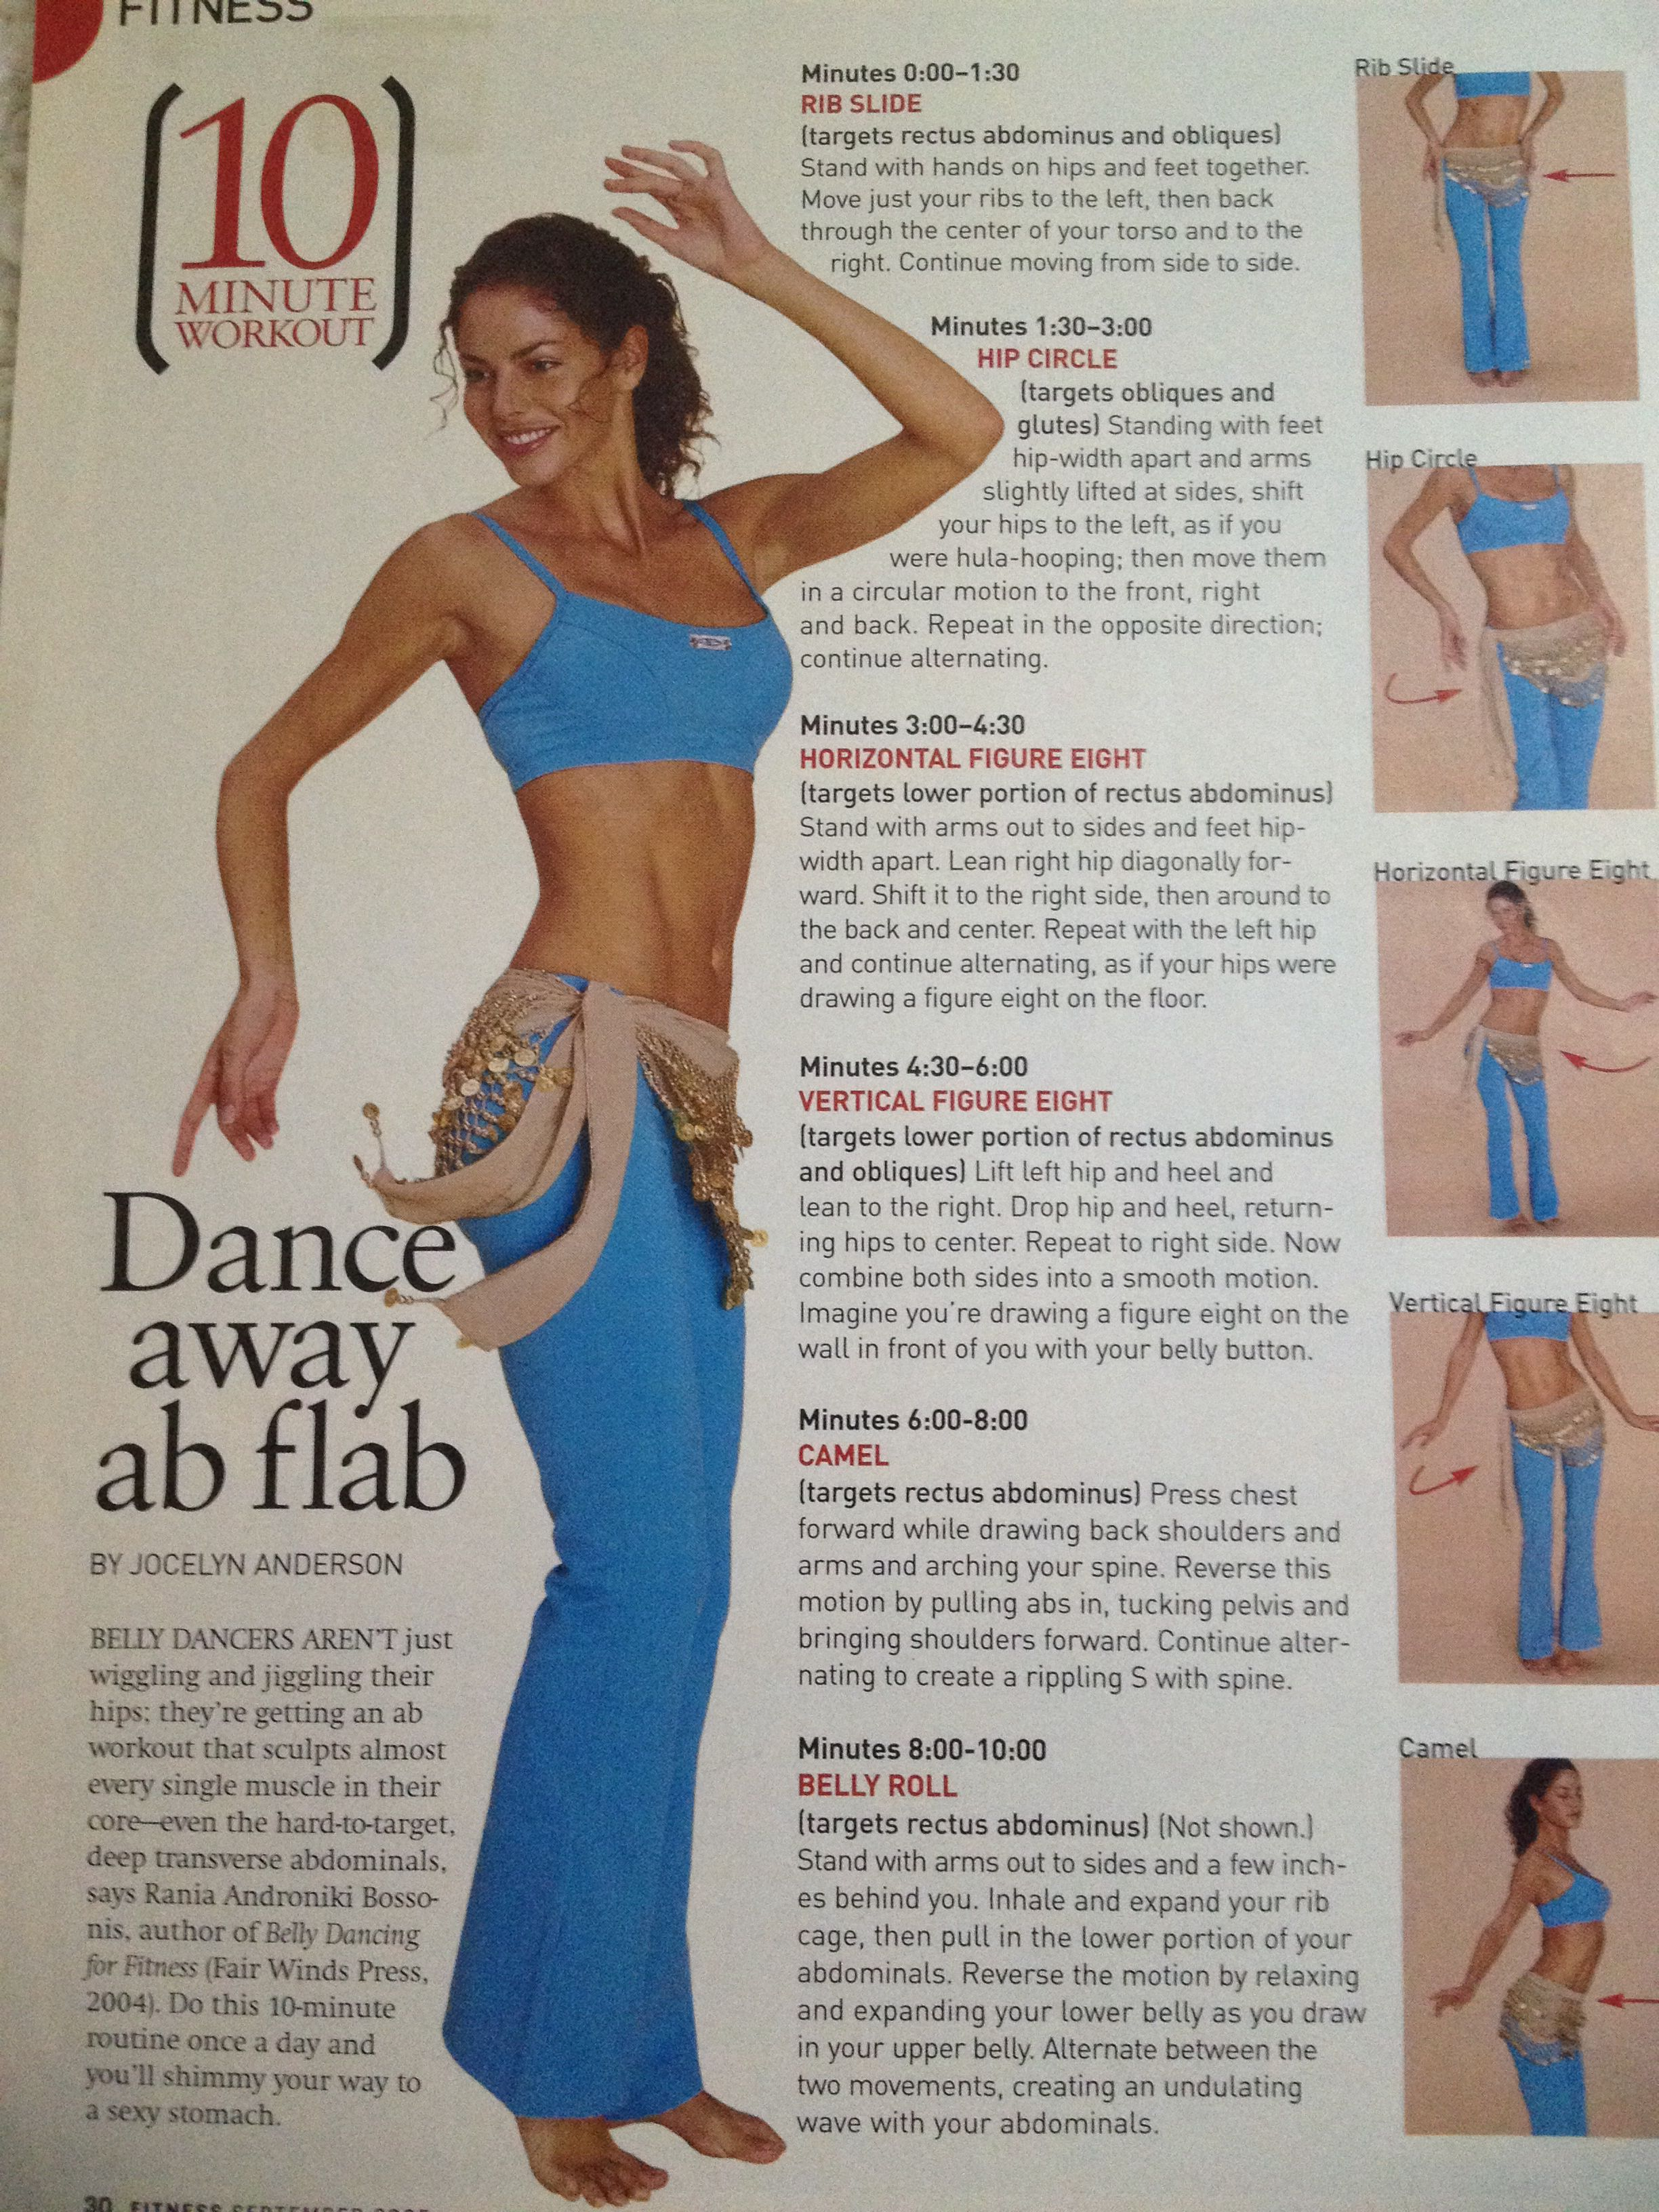 Belly dance away ab flab | Belly dancing for beginners ...